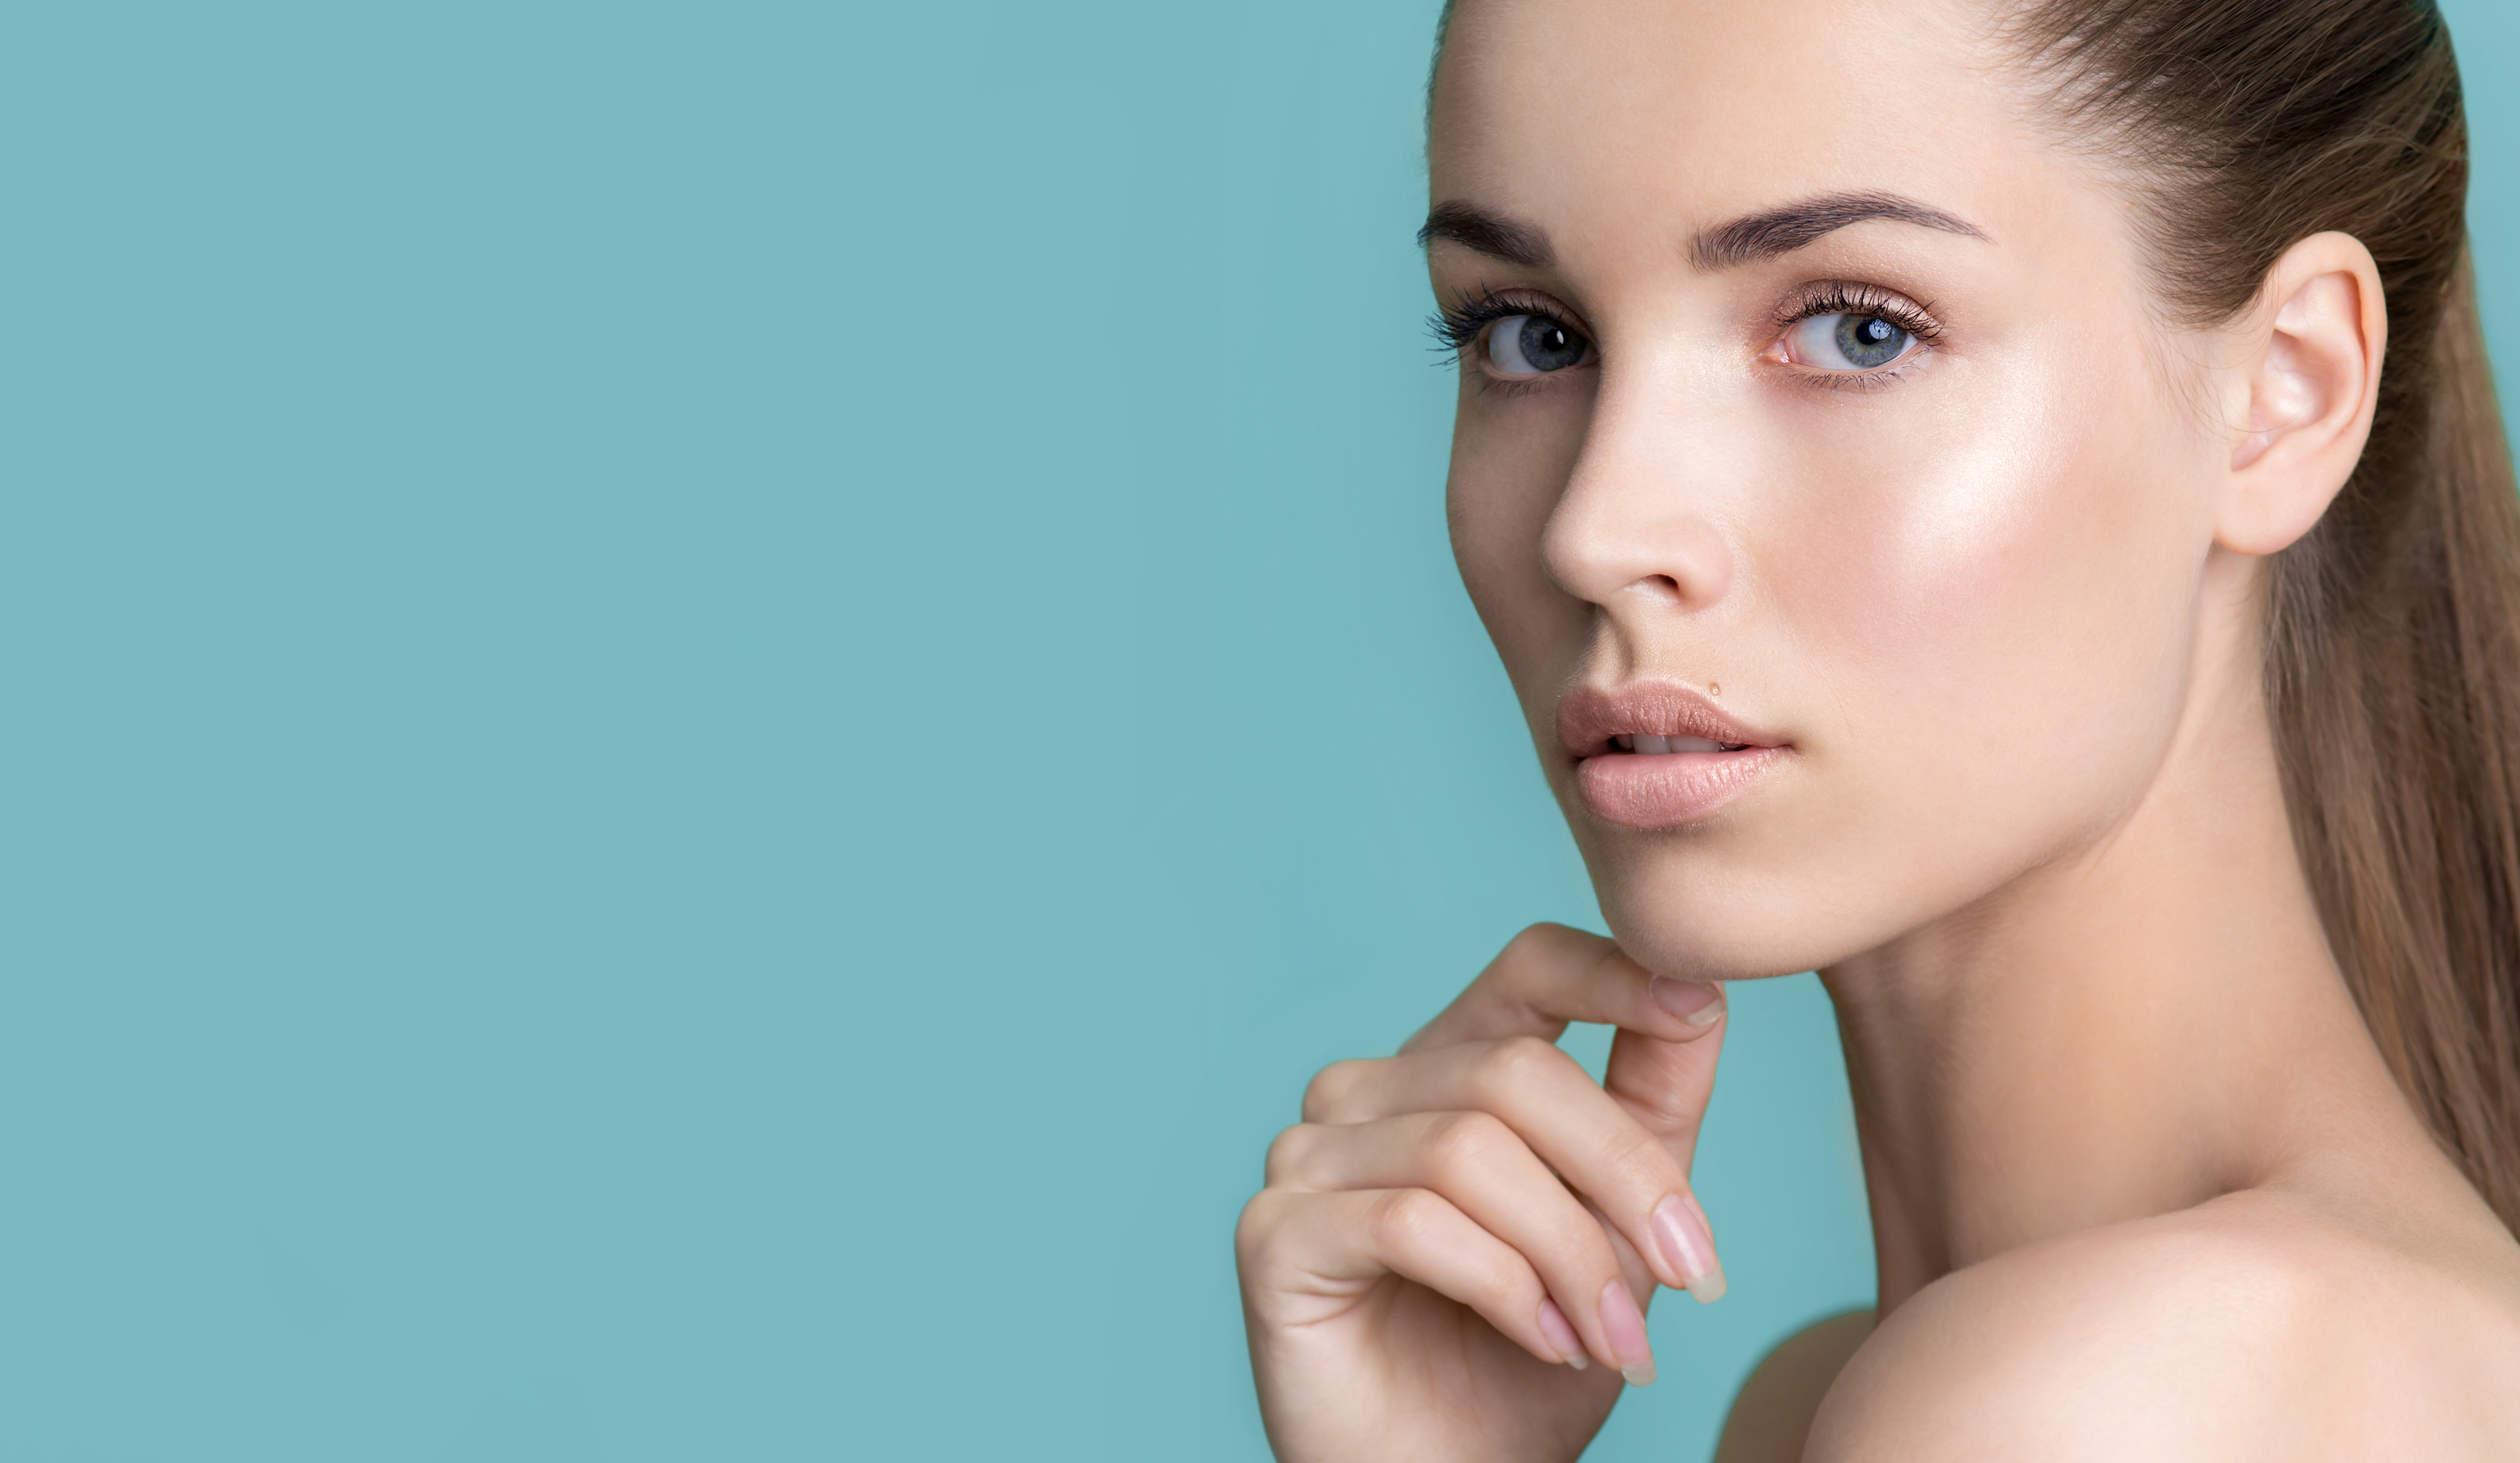 skincare | skincare tips | skincare tips for the bride to be | bride | wedding | glowing skin | bridal beauty | skincare routine | perfect skin